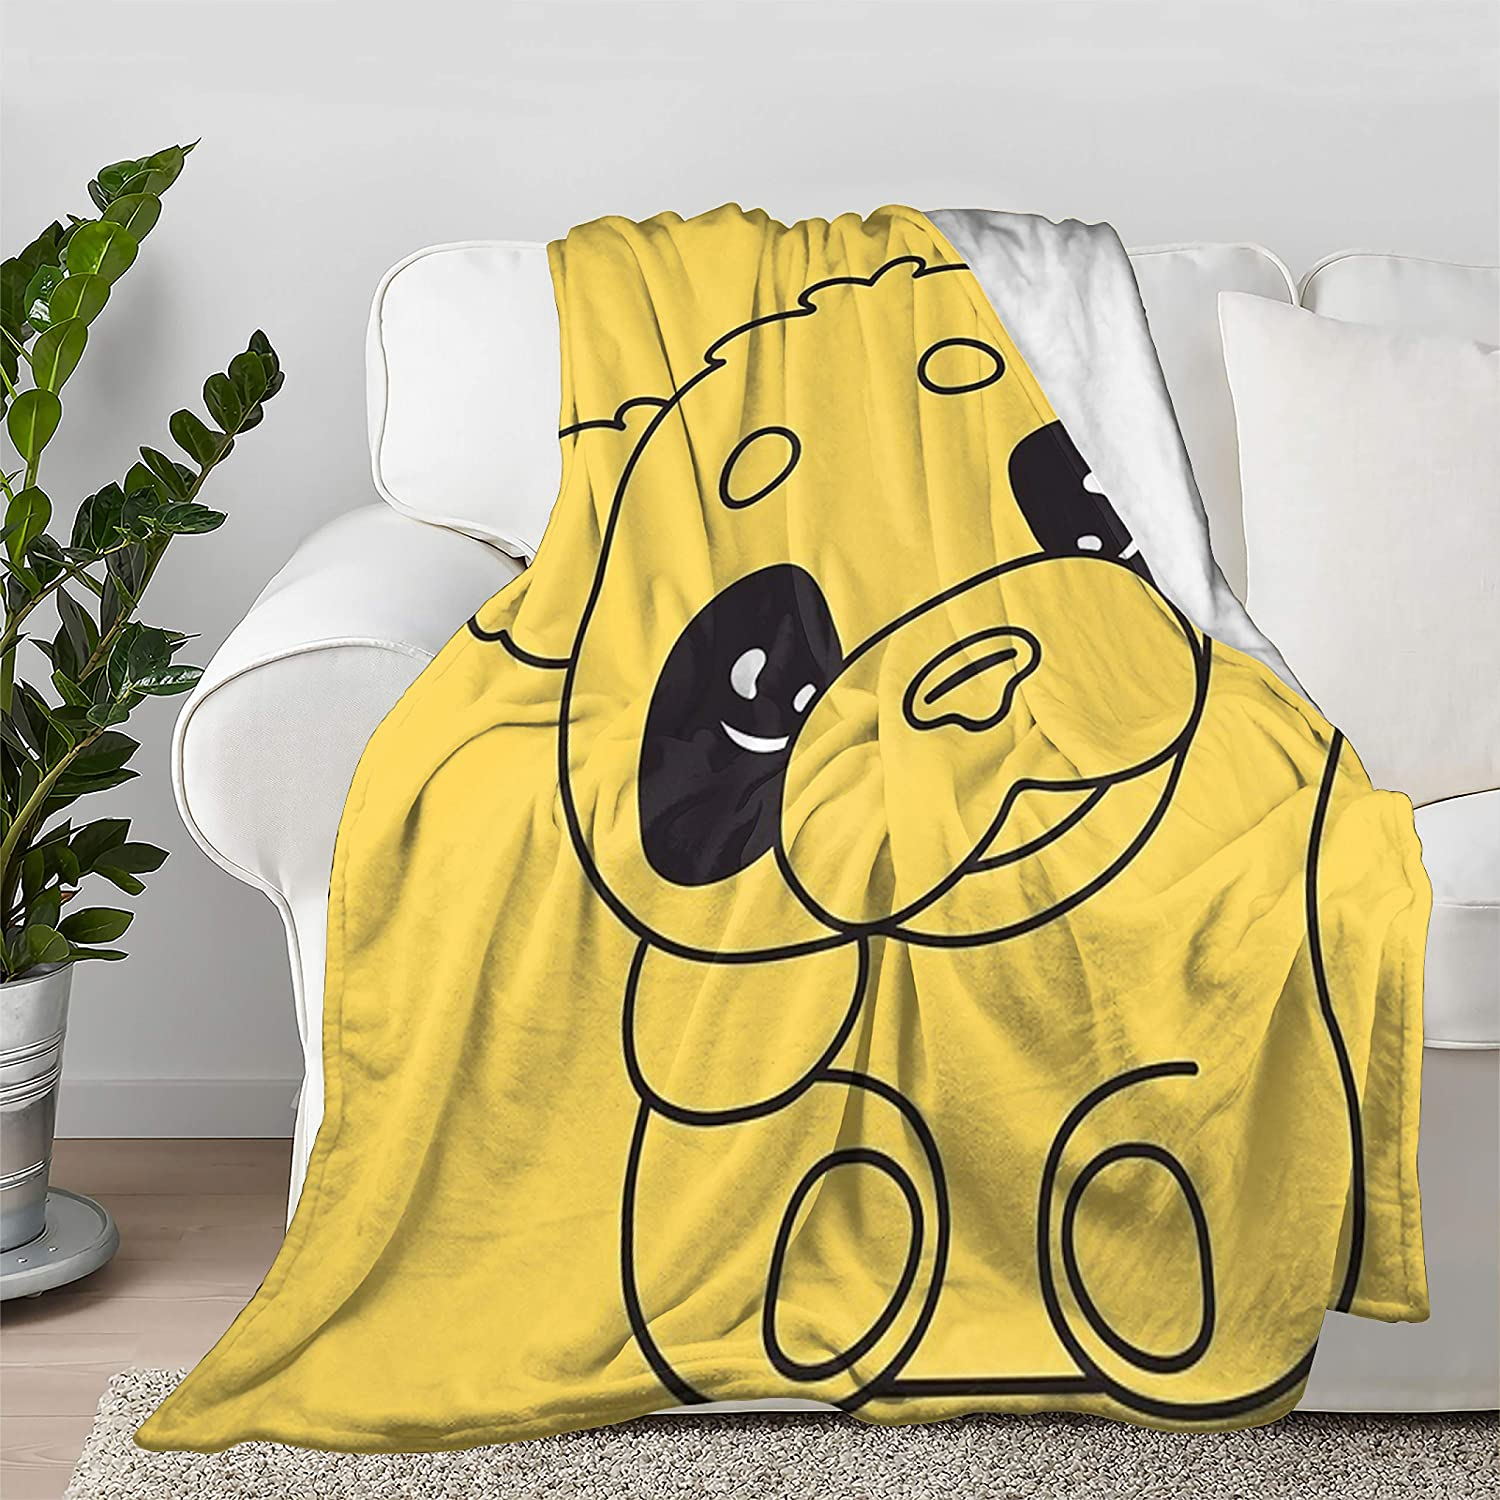 Baby Overseas parallel import regular item Panda Free shipping Waving Paw Cartoon Flannel Soft Throw Blanket Fit Bed